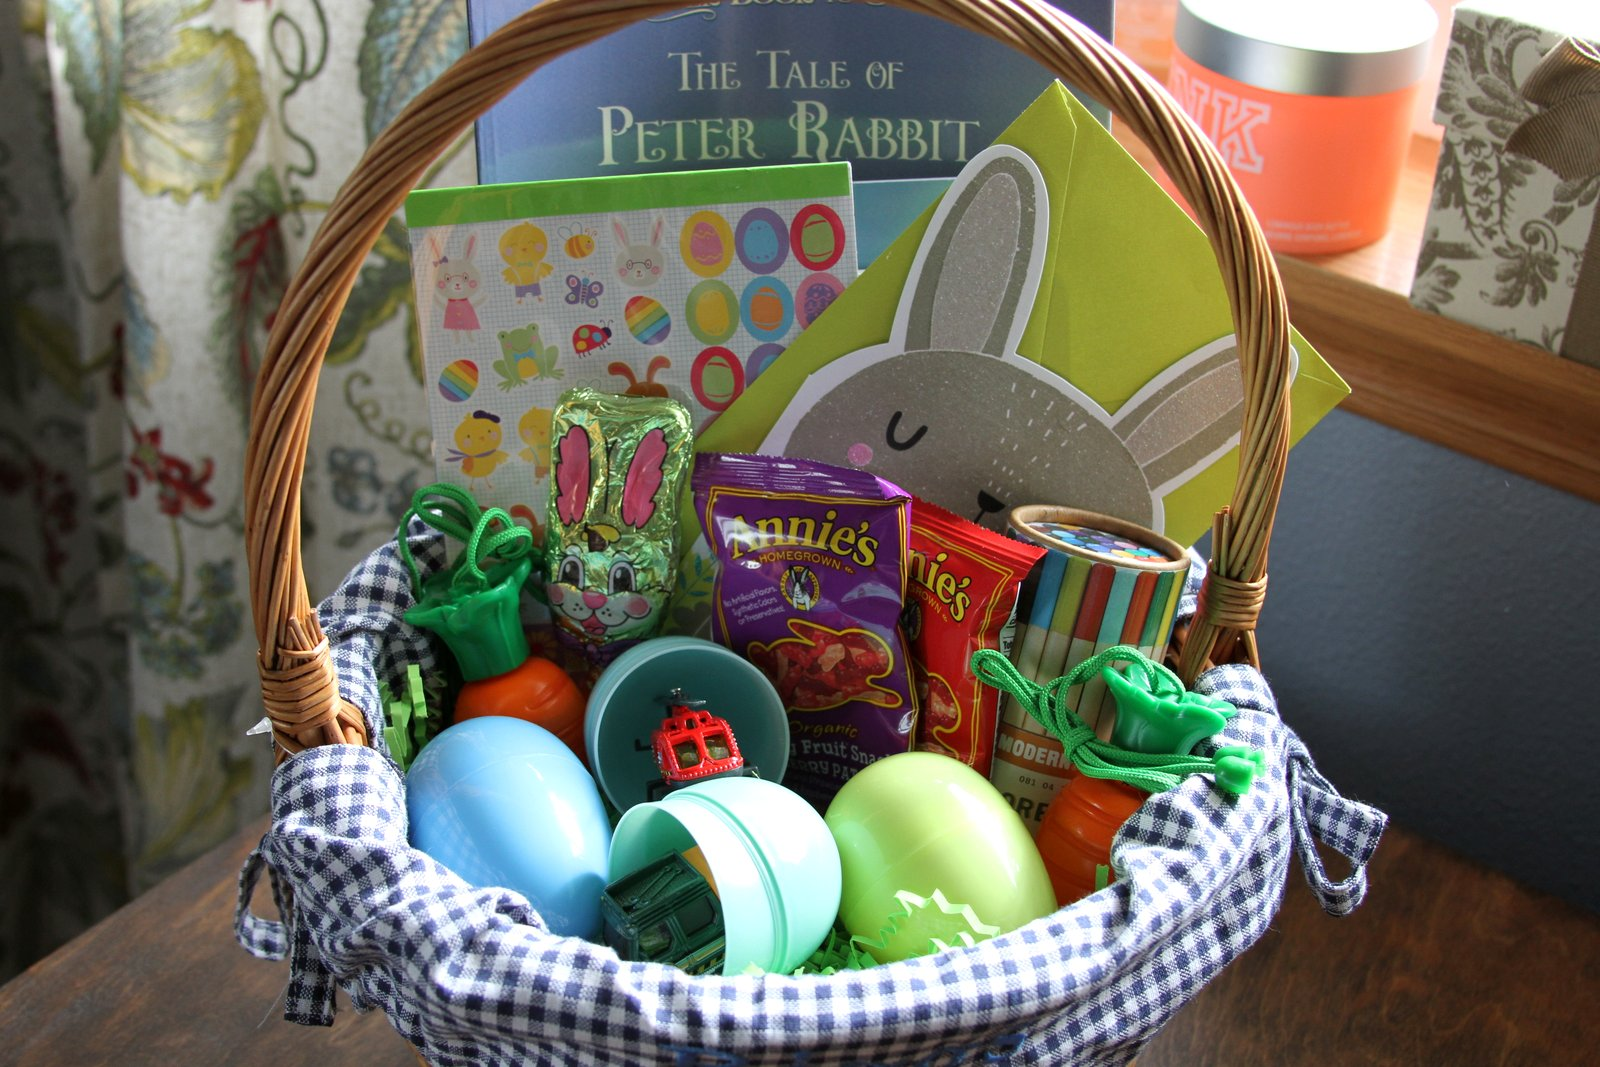 Life alaskan style basket full of goodies toddler easter basket basket full of goodies toddler easter basket ideas negle Gallery